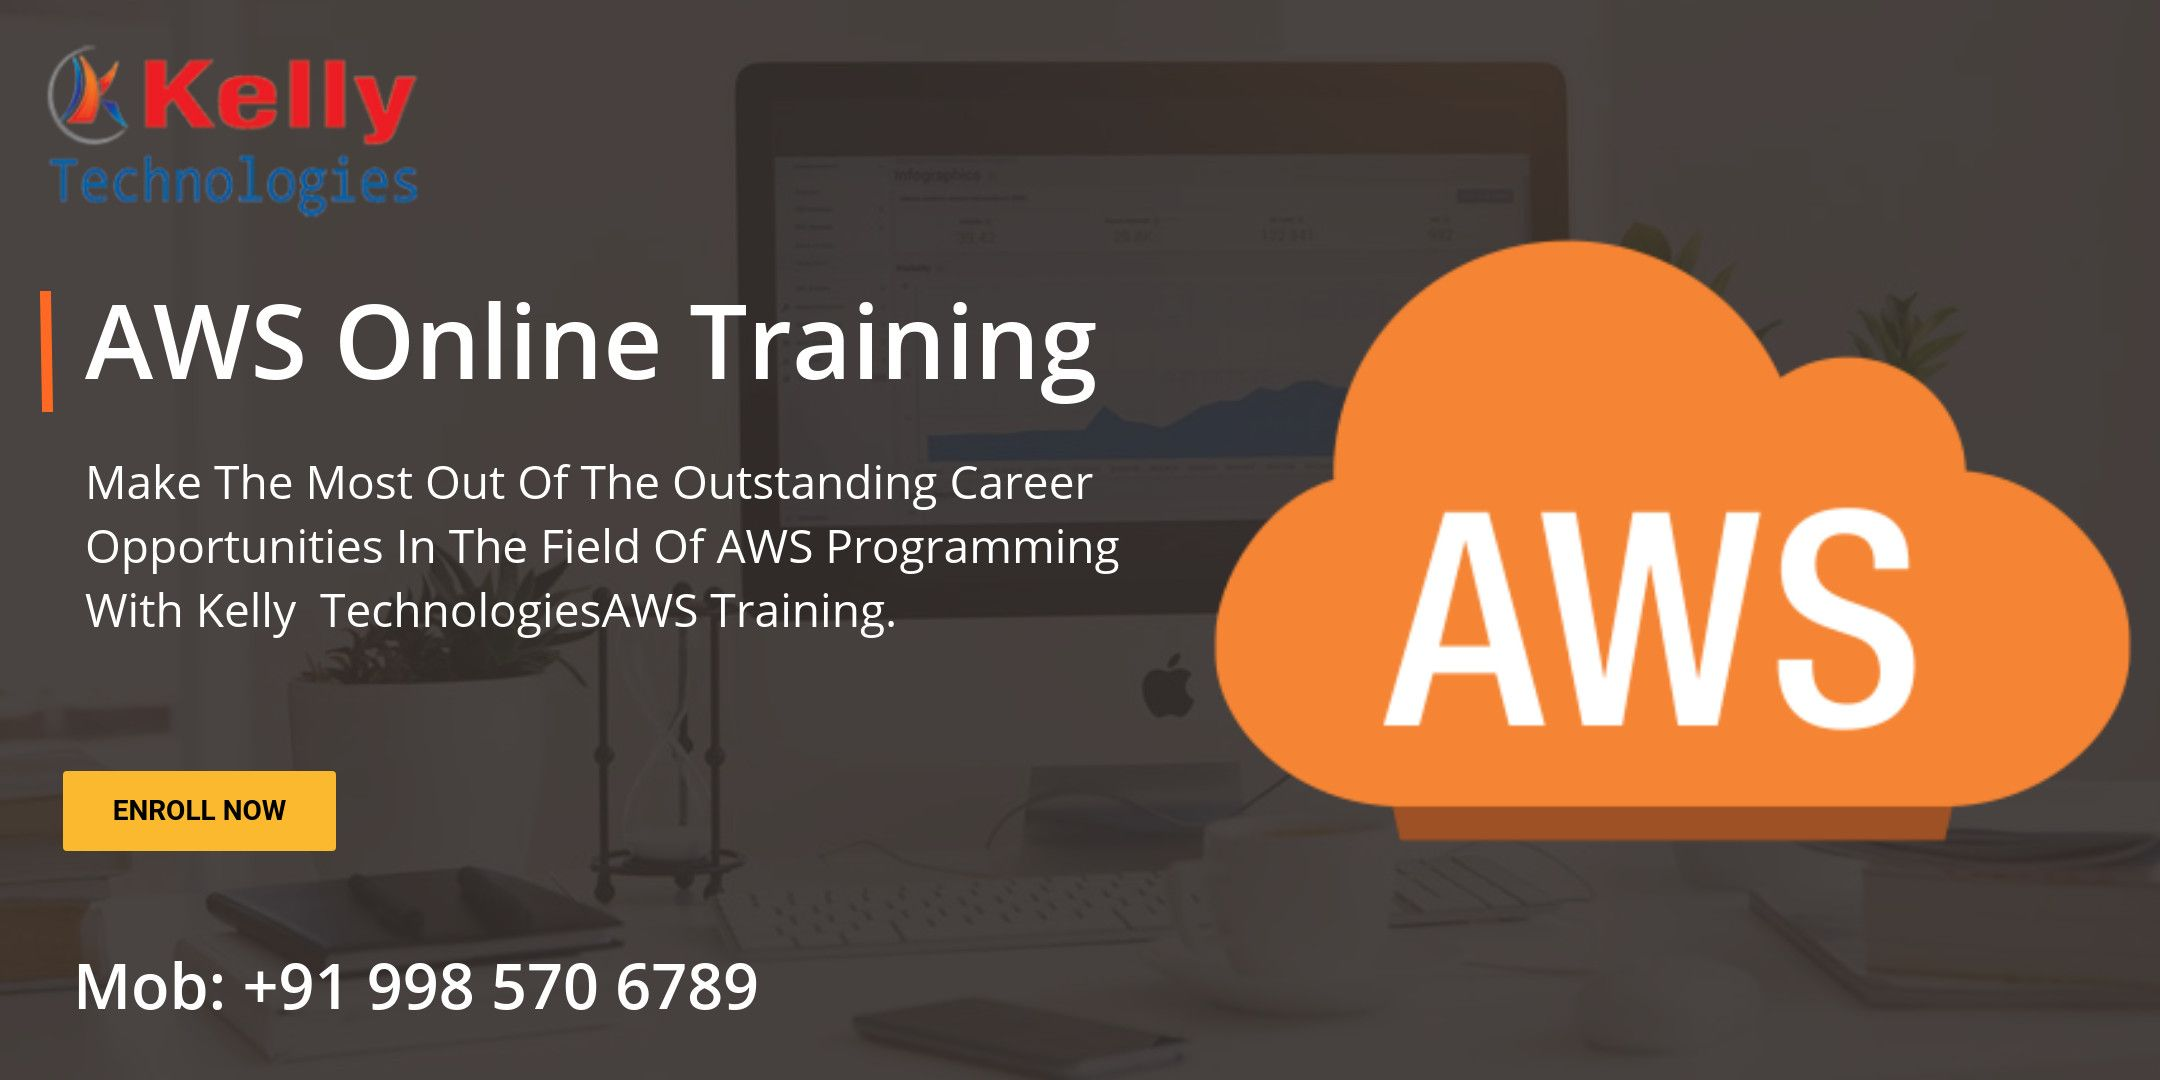 Aws online training : Kelly Technologies is pleased to